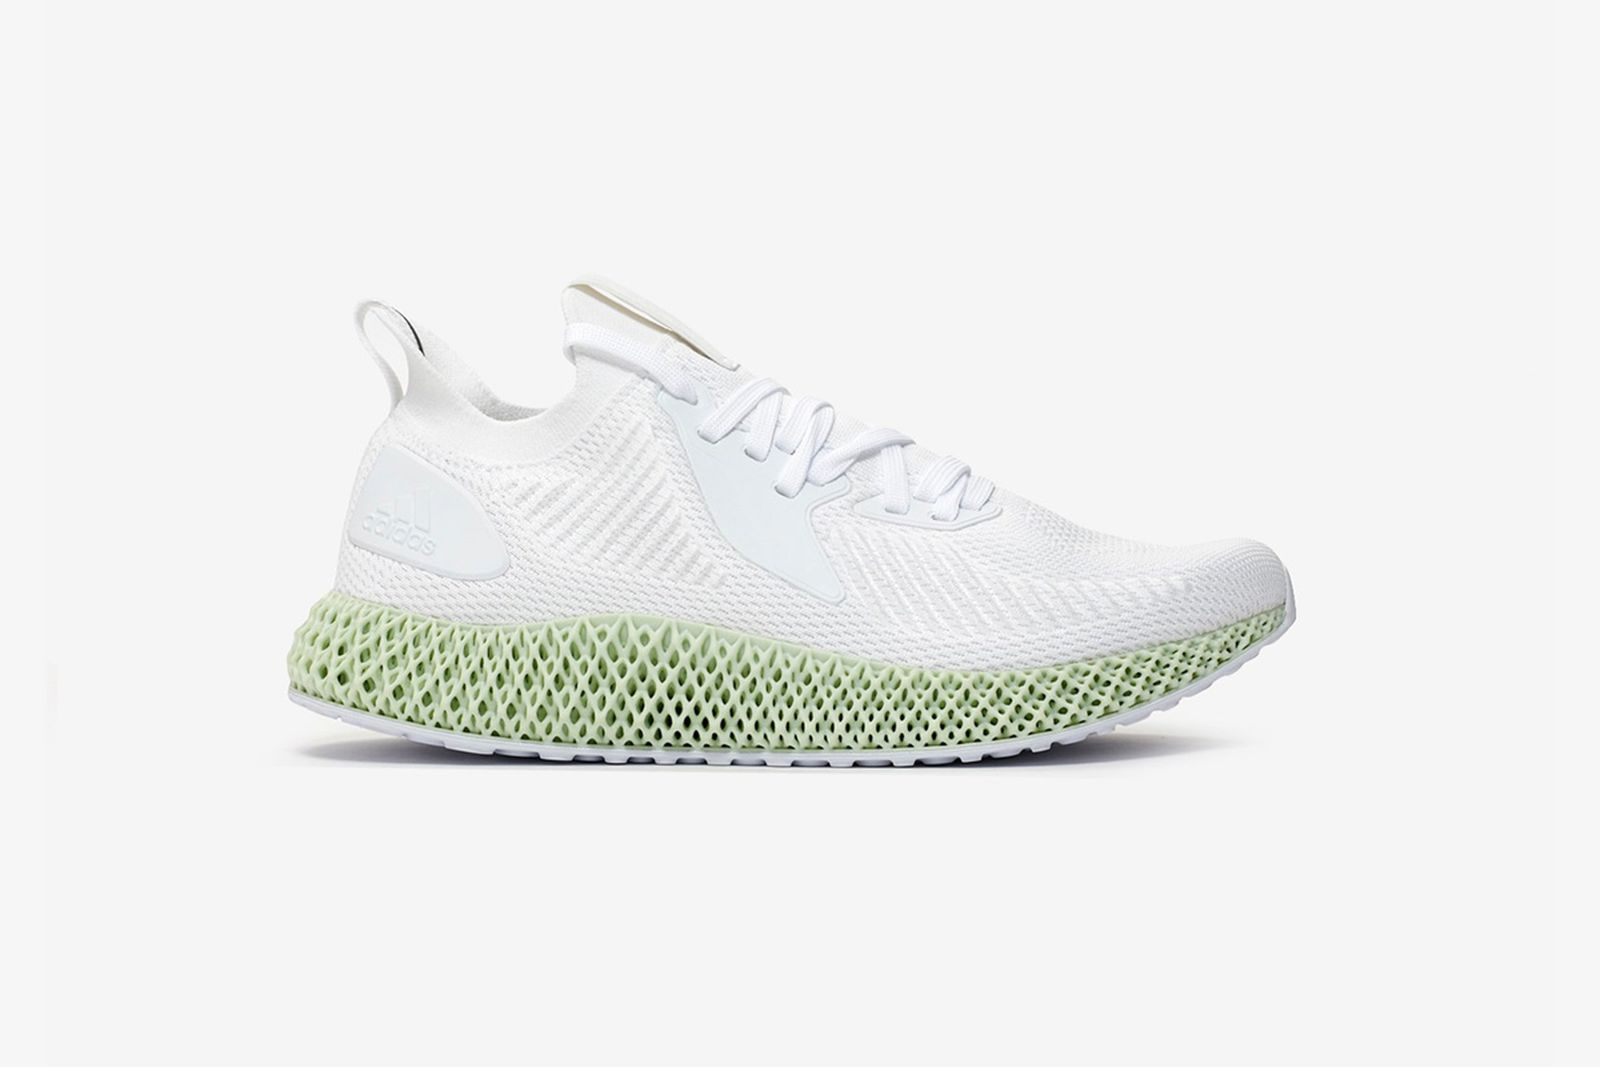 adidas alphaedge 4d ss19 release date price